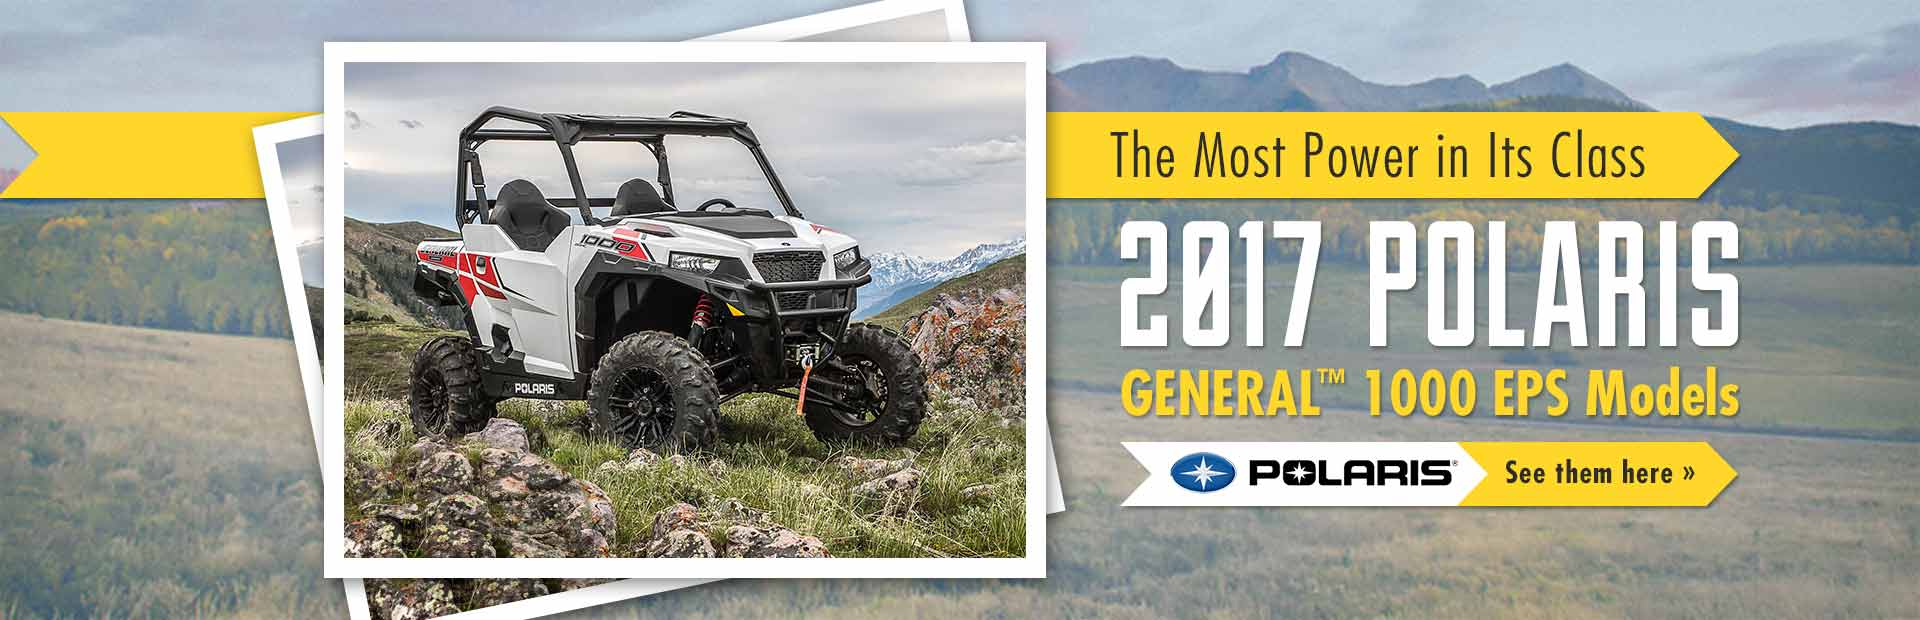 2017 Polaris GENERAL™ 1000 EPS Models: Click here to view our selection.